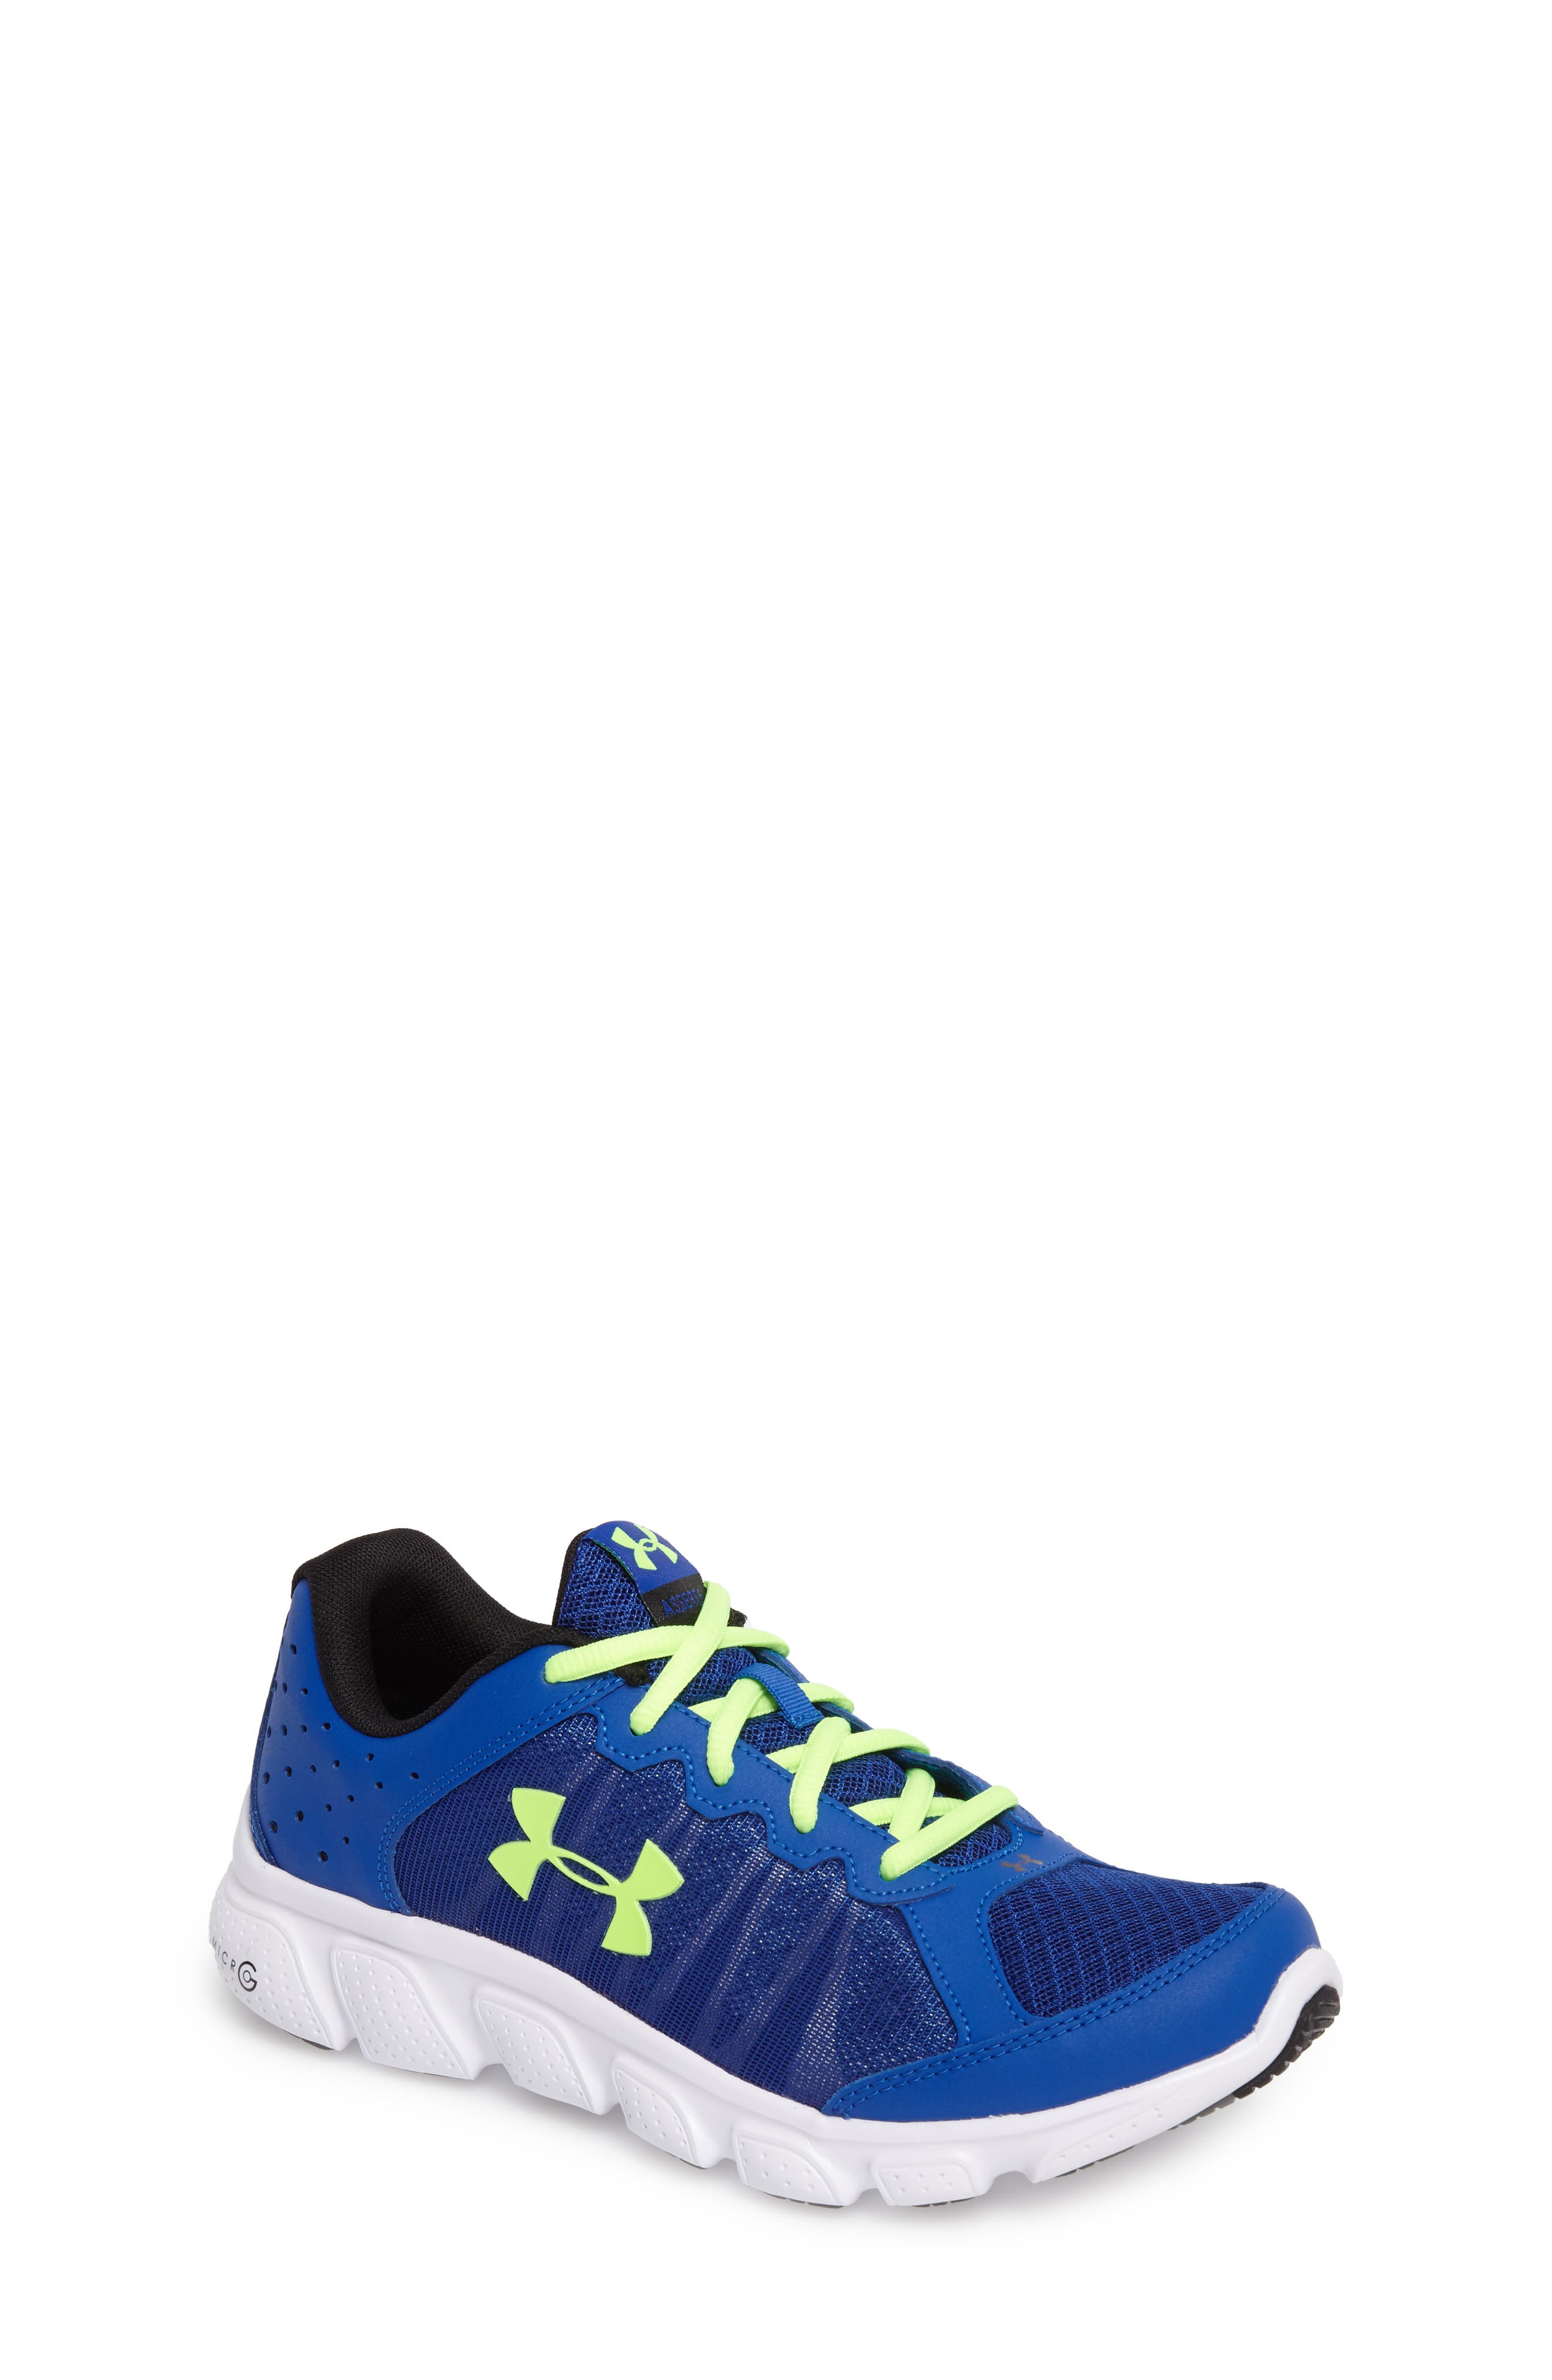 UNDER ARMOUR Micro G<sup>®</sup> Assert VI Running Shoe